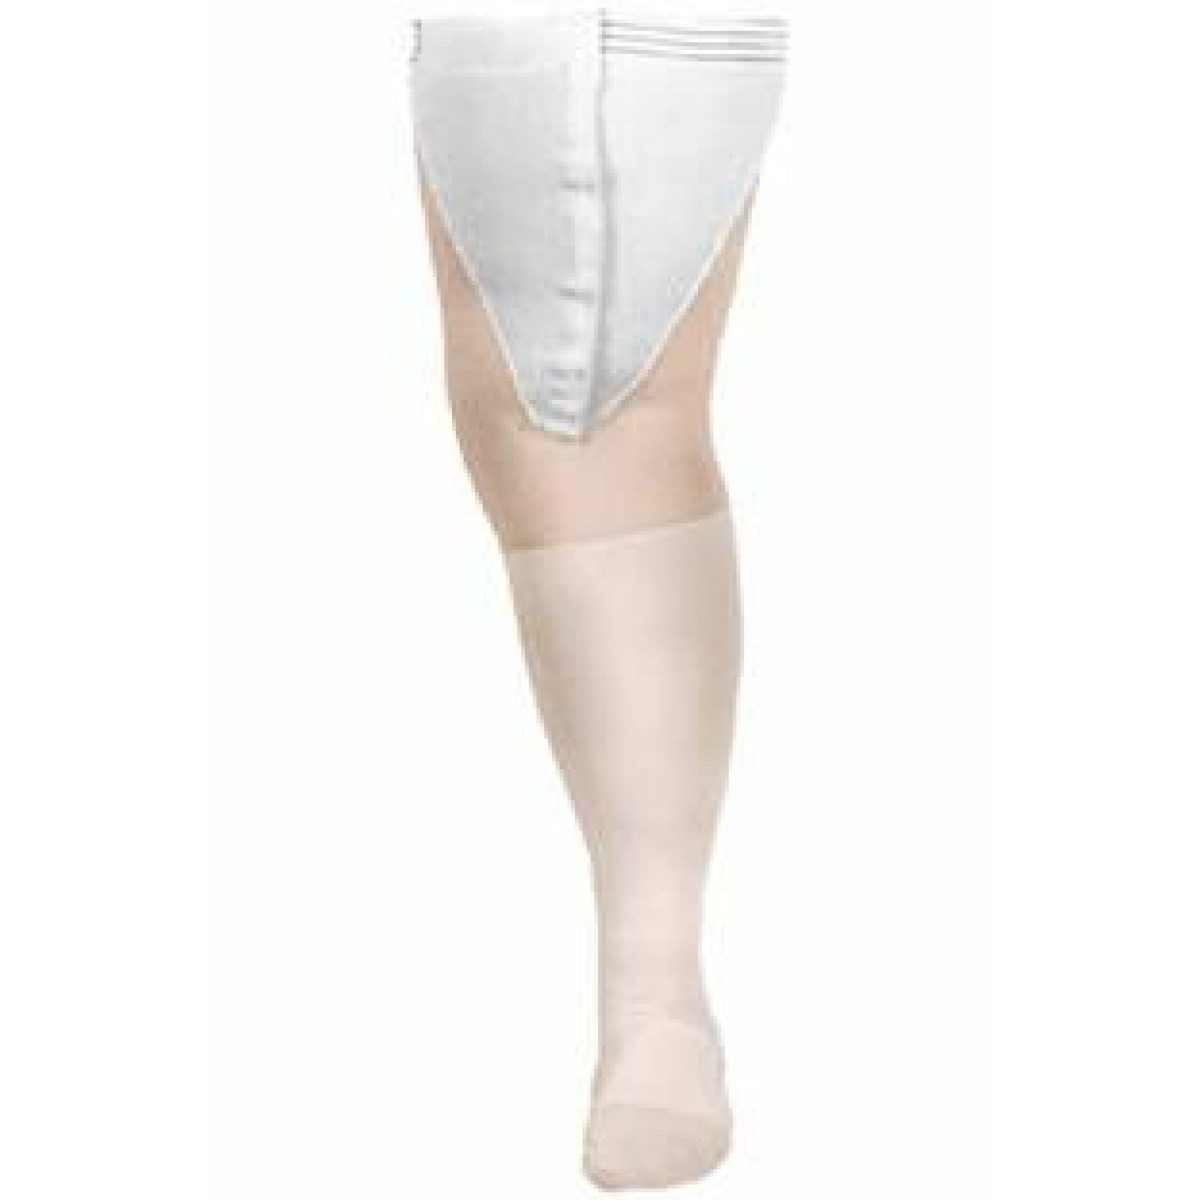 how to put on anti embolism stockings